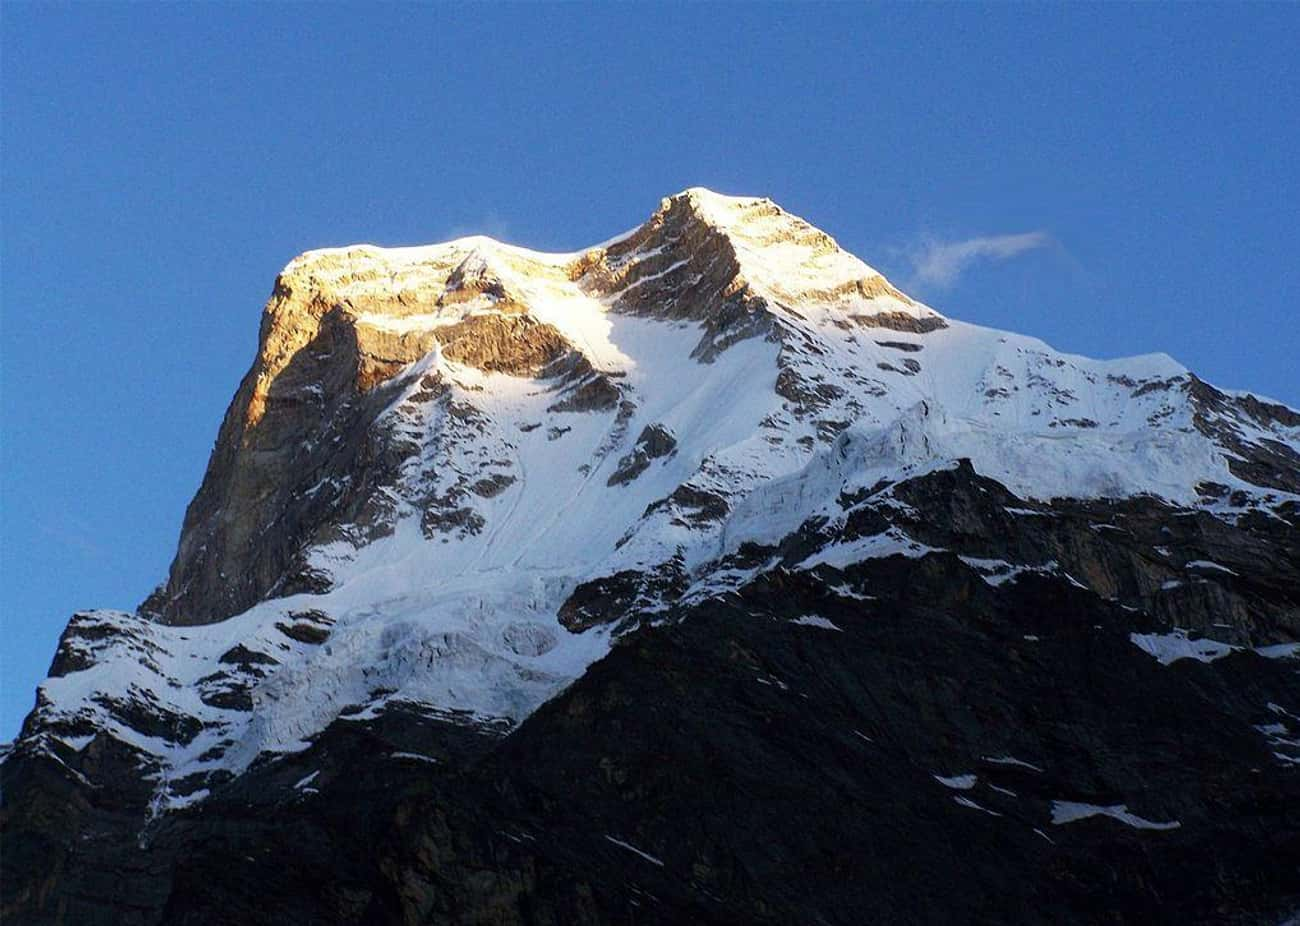 Unidentified Bodies Pop Up Lef is listed (or ranked) 2 on the list For Decades, Climbers Have Encountered Ghosts And Supernatural Phenomena On Mount Everest